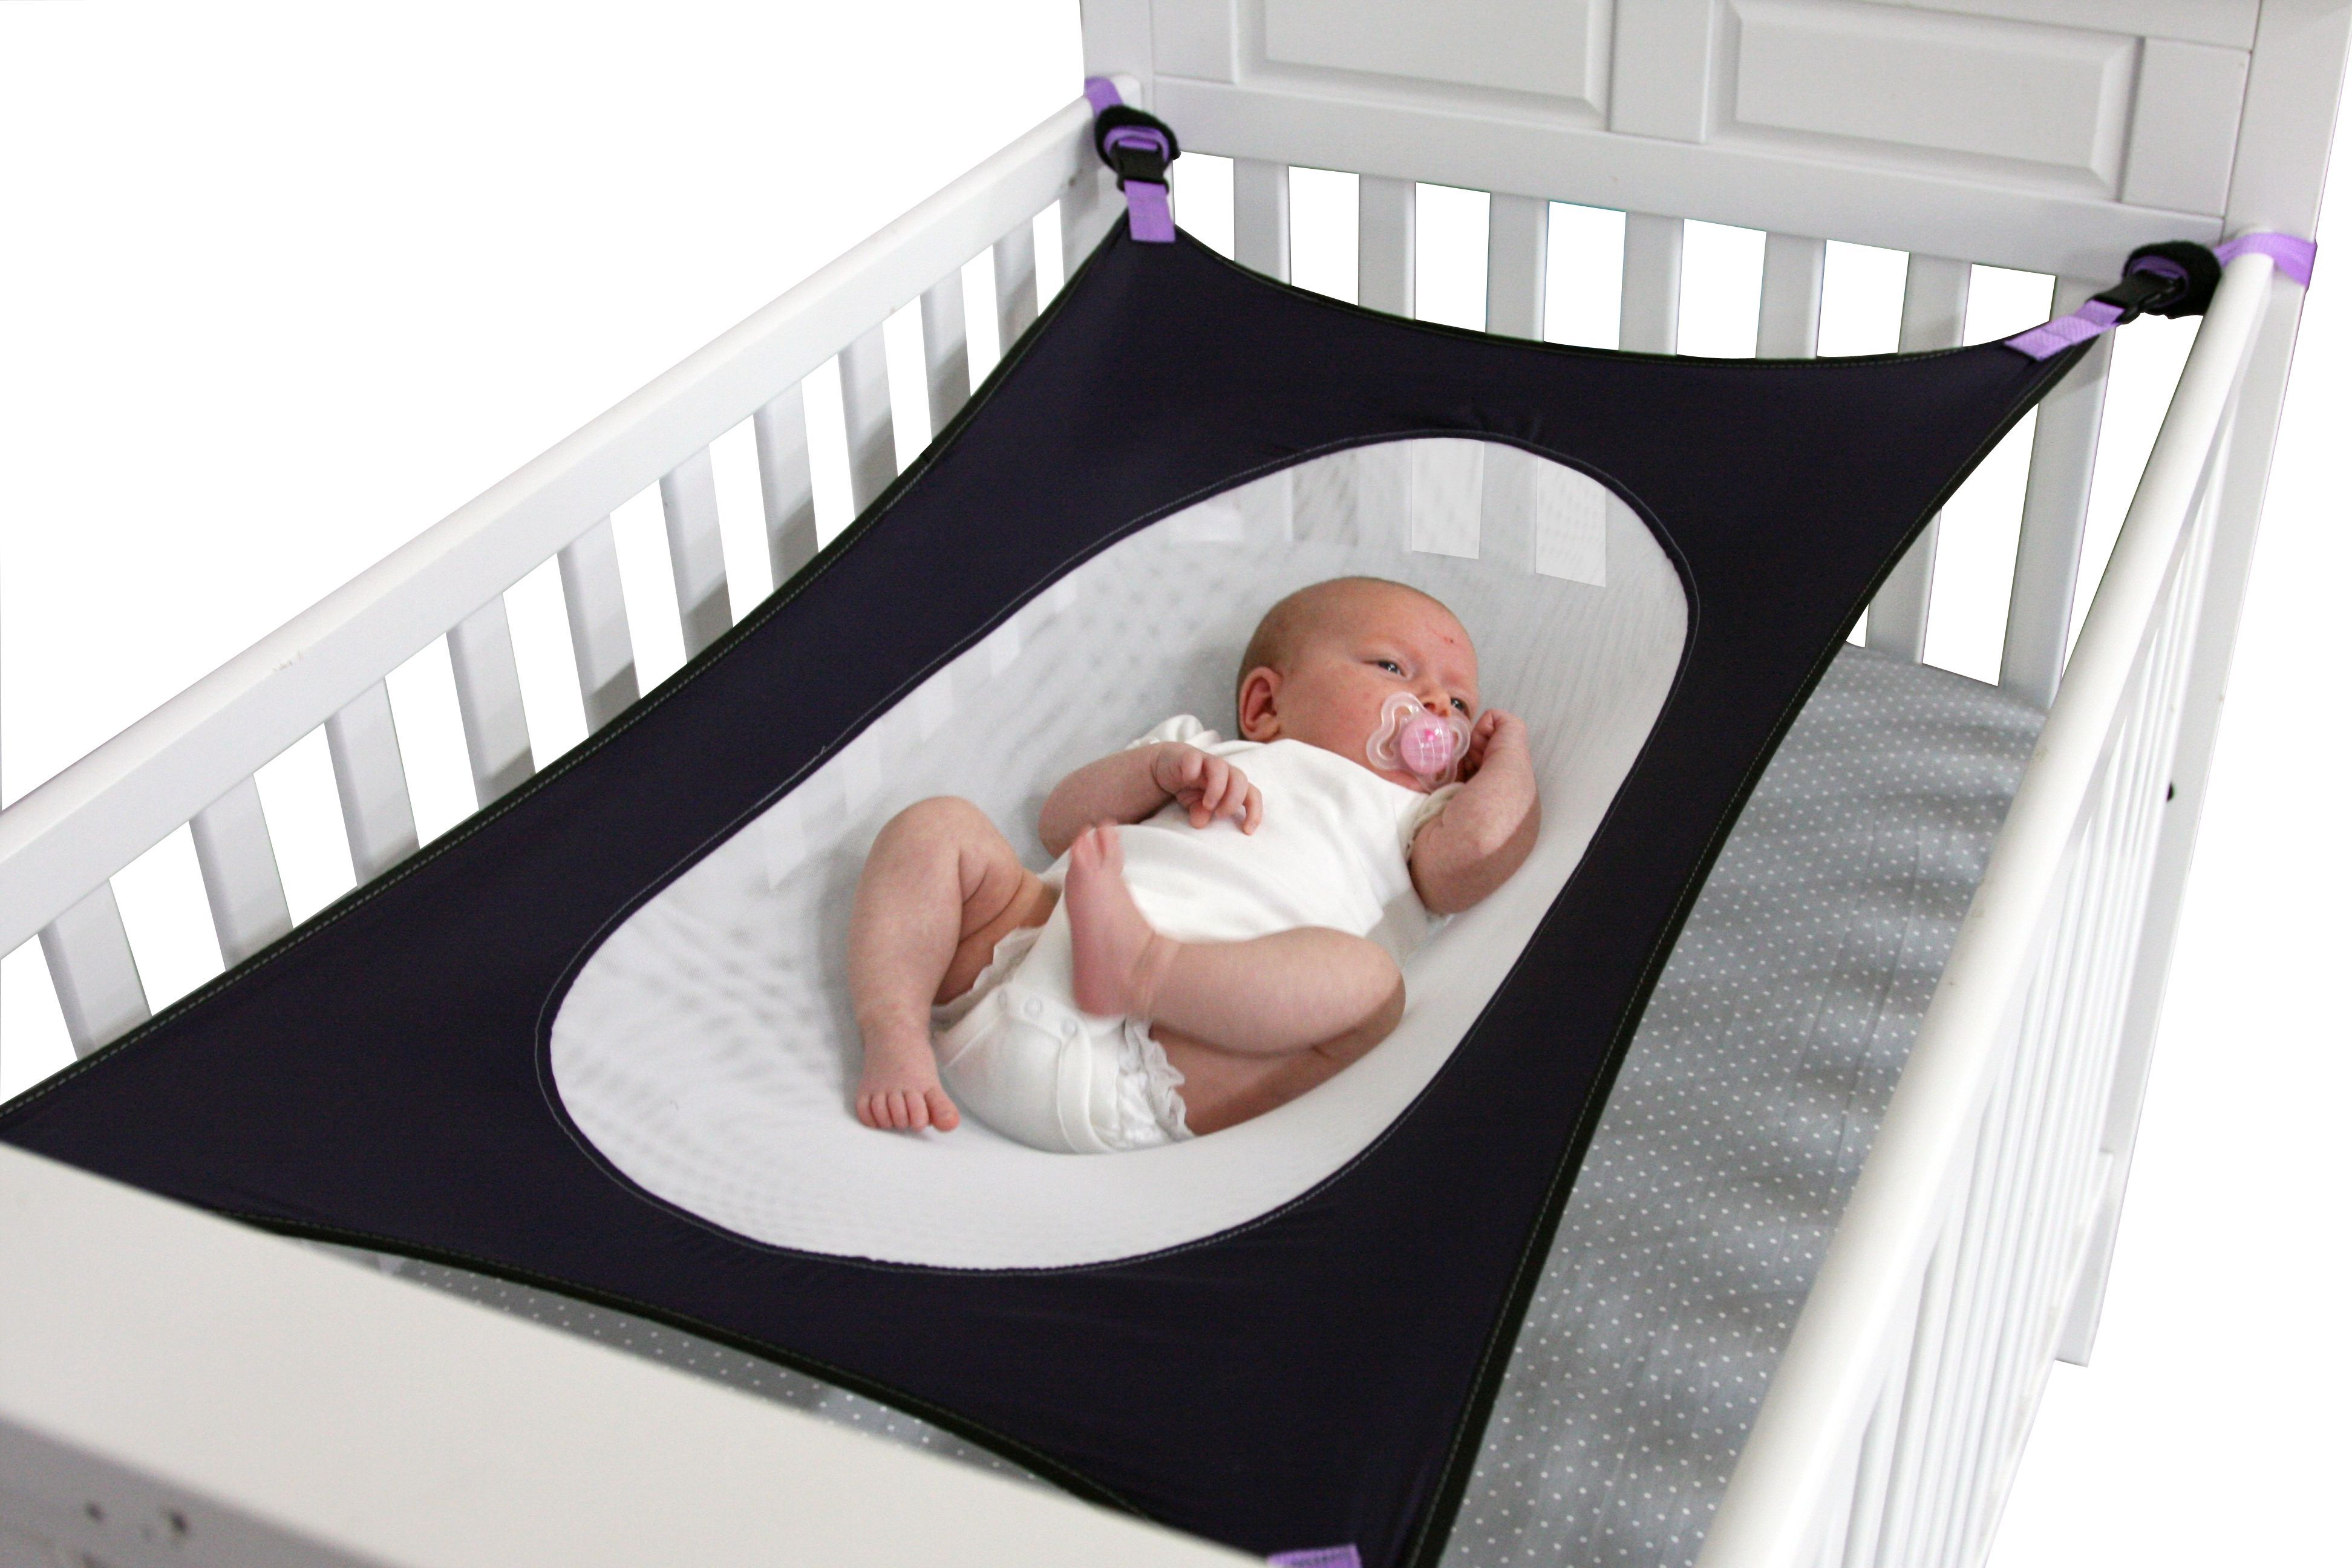 baby gear that will help you survive the newborn phase  crescent womb helps babies sleep baby gear that will help you survive the newborn phase  crescent      rh   pinterest